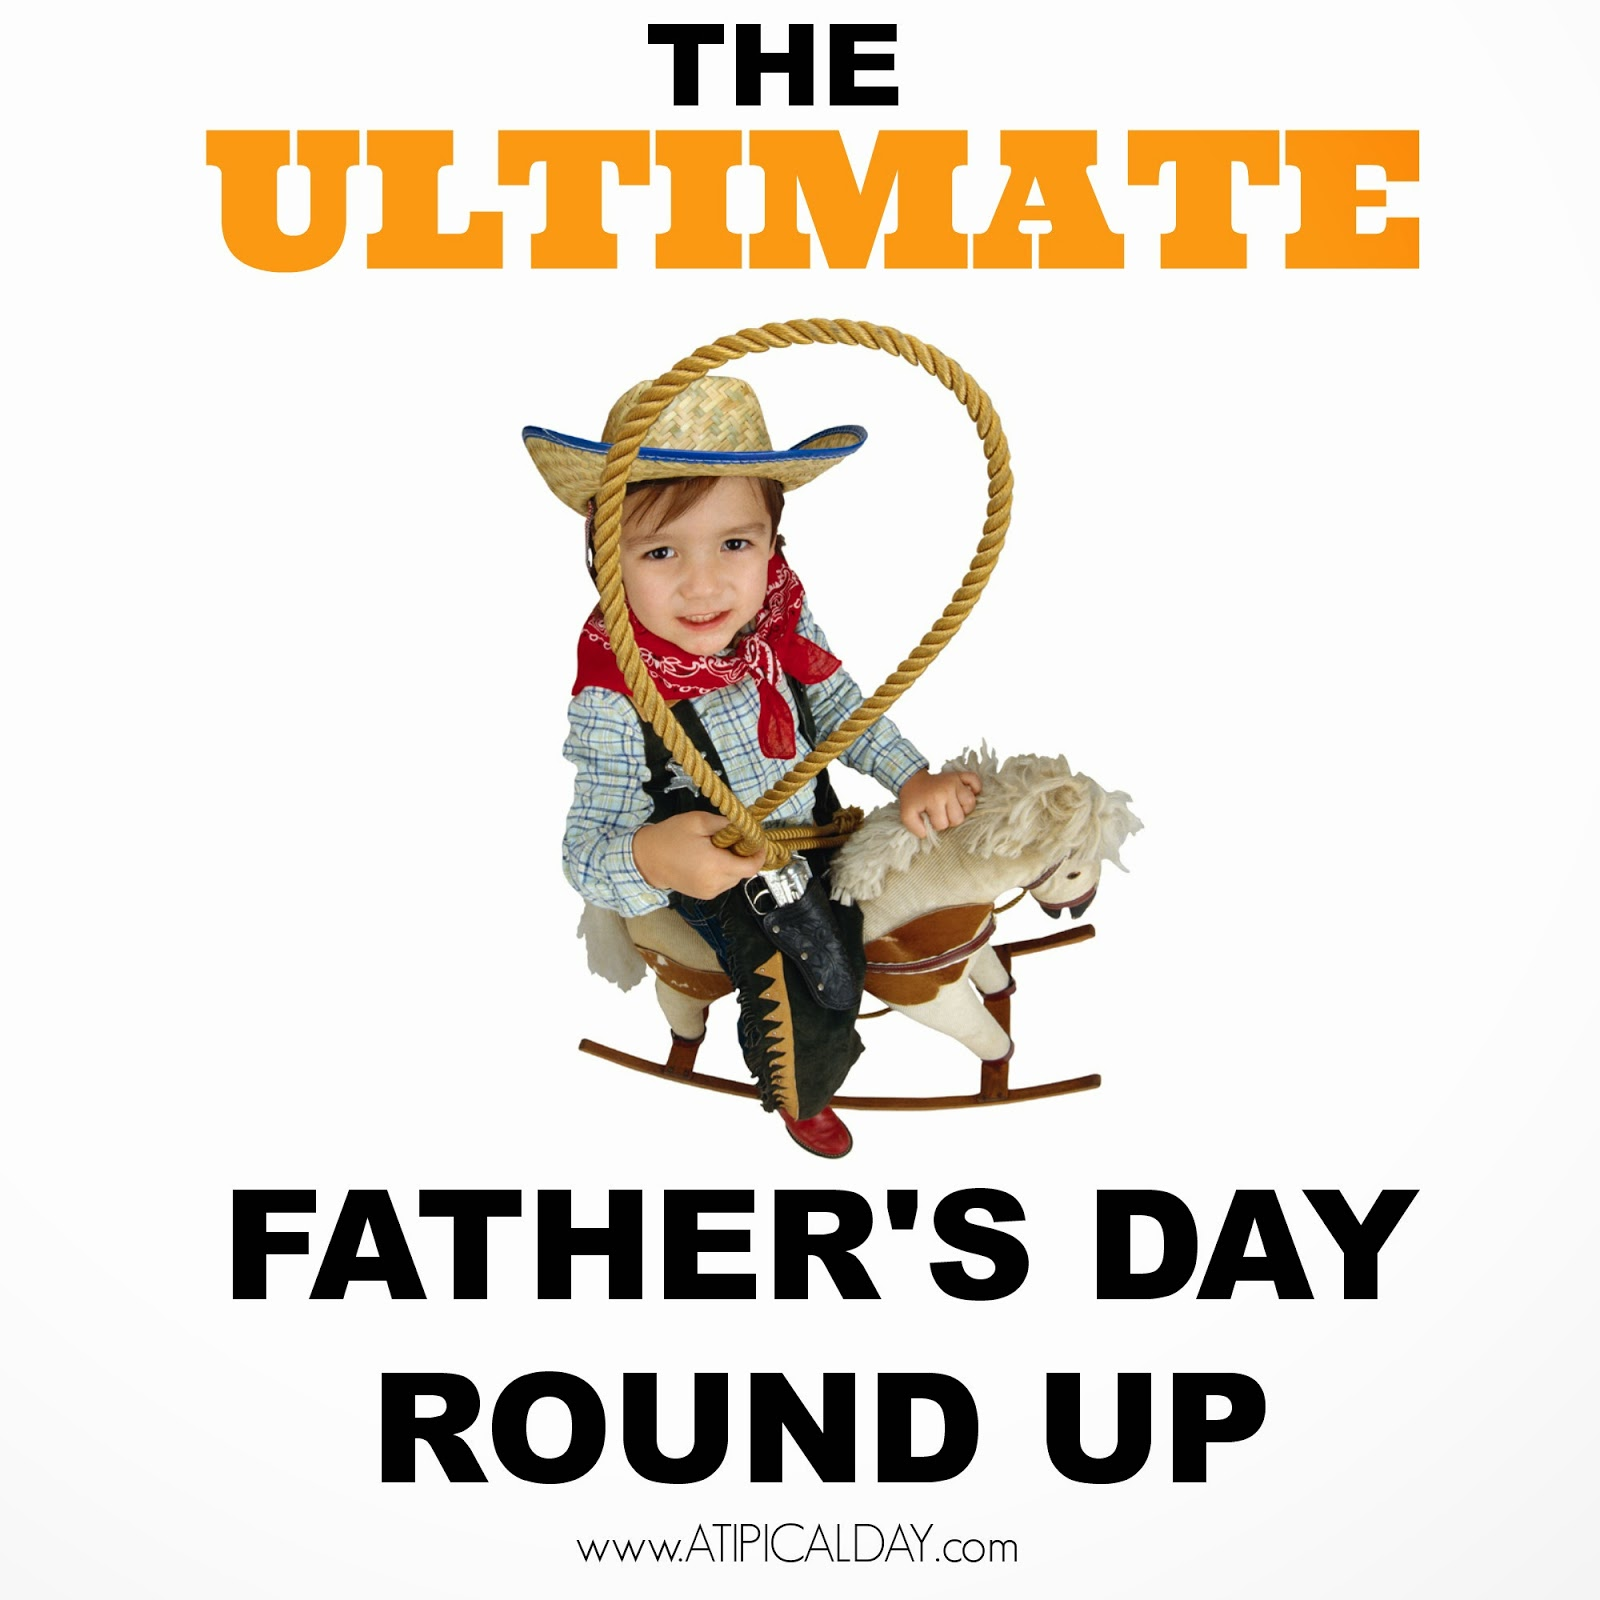 little boy dressed like a cowboy holding a laso and riding a rocking horse.  The Ultimate Father's Day Round Up @ATIPicalDay #fathersday #giftsfordad #foodfordad #fathersdayideas #fathersdayroundup #poemsaboutfathers